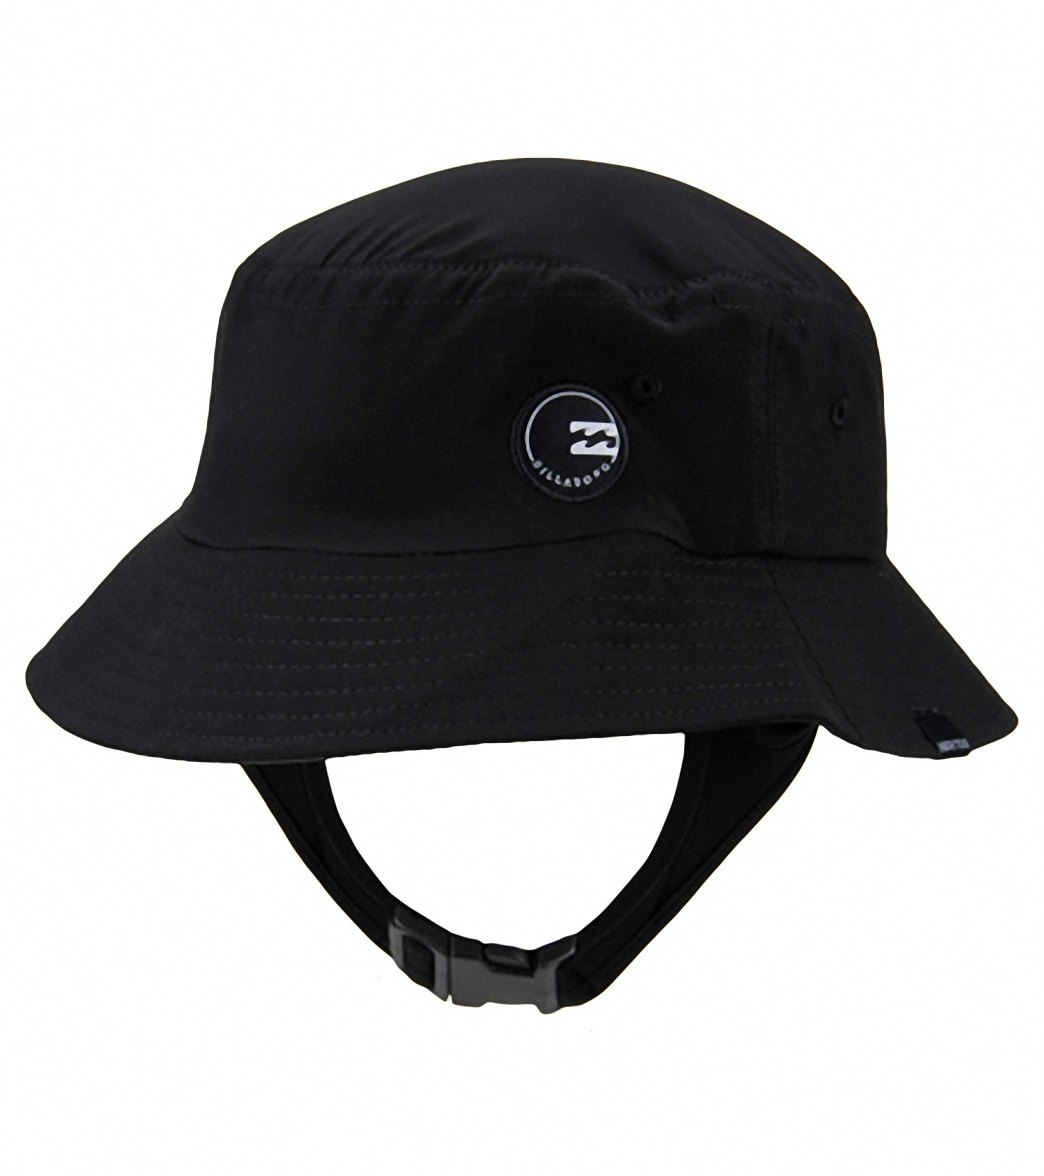 Billabong Men s Supreme Bucket Hat at SwimOutlet.com 28321dfc2c3